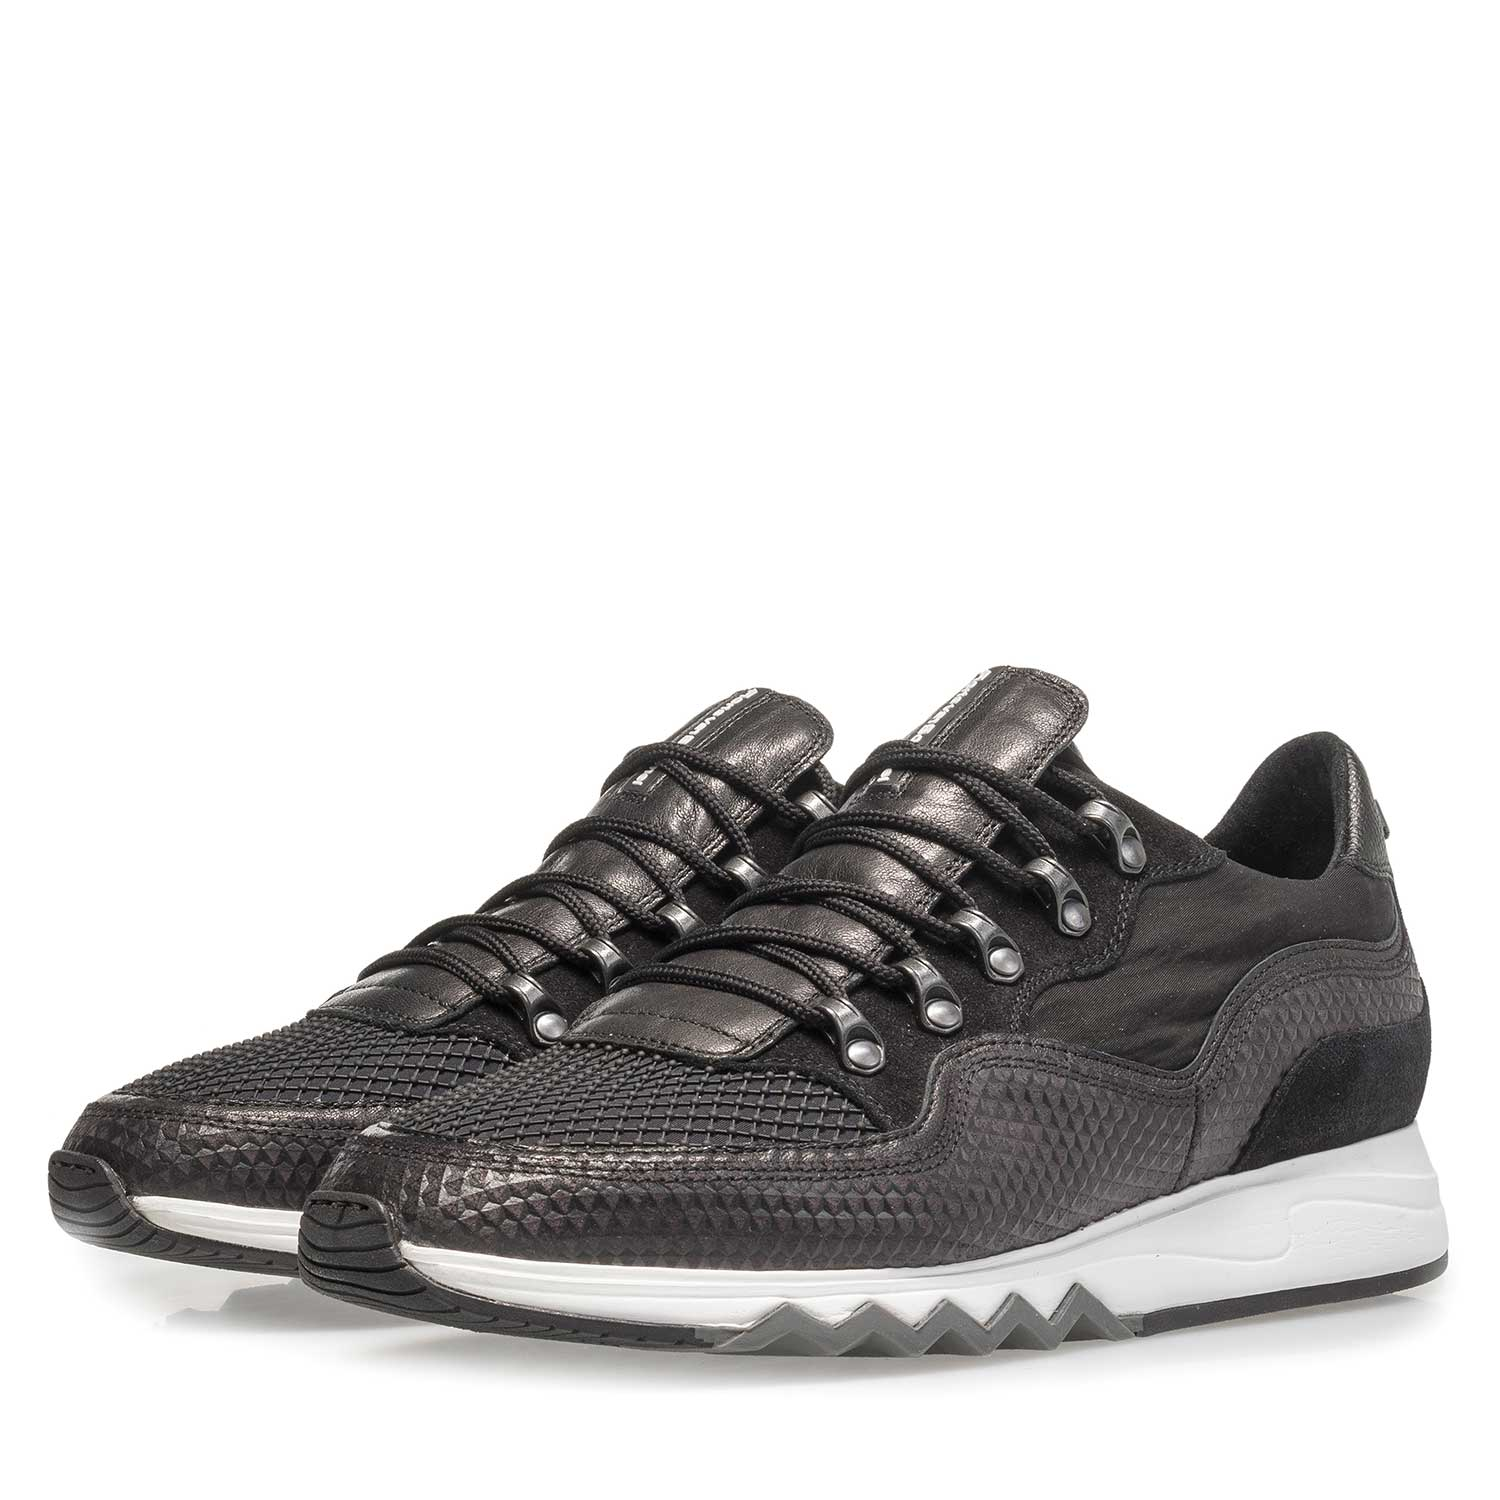 16393/02 - Dark grey nubuck leather lace shoe